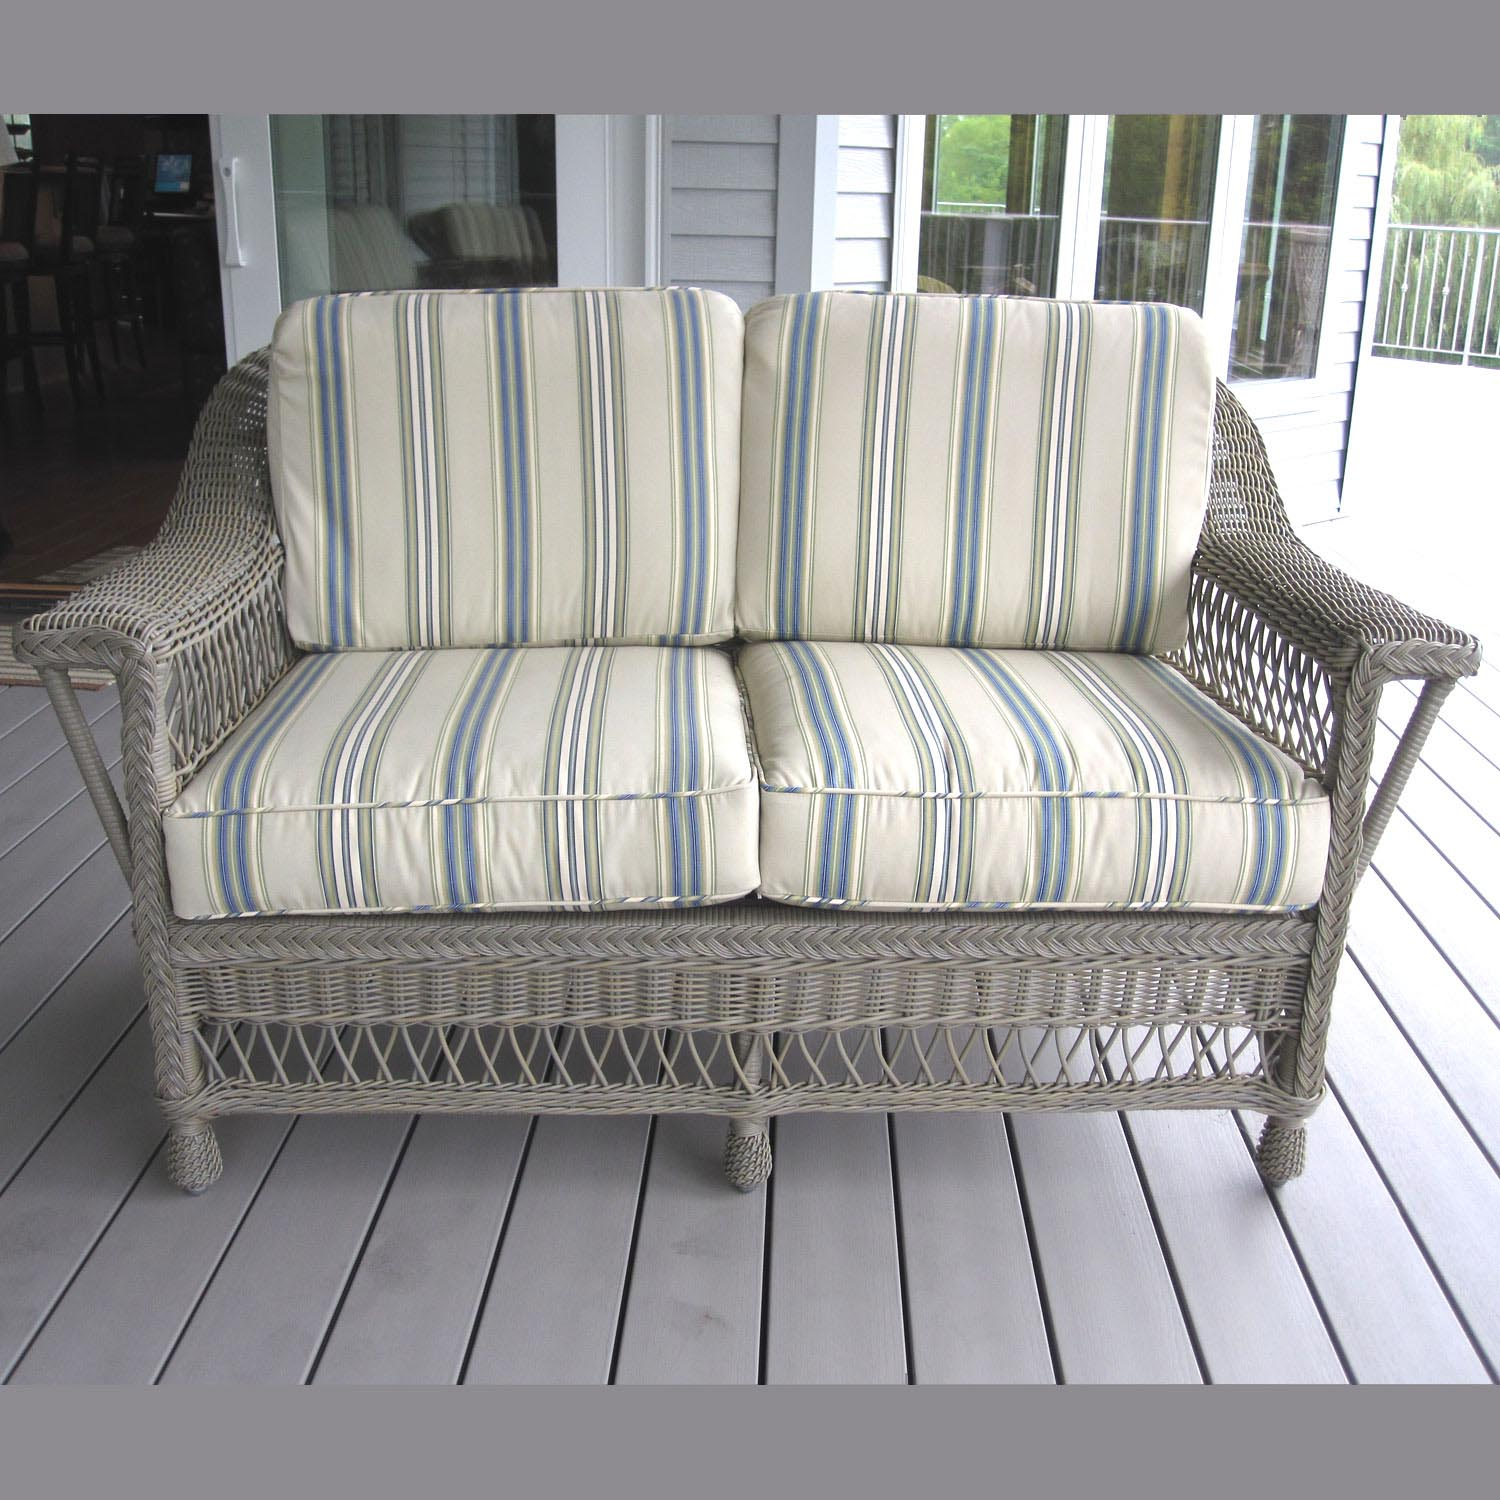 Lovely Bar Harbor Outdoor Wicker Loveseat